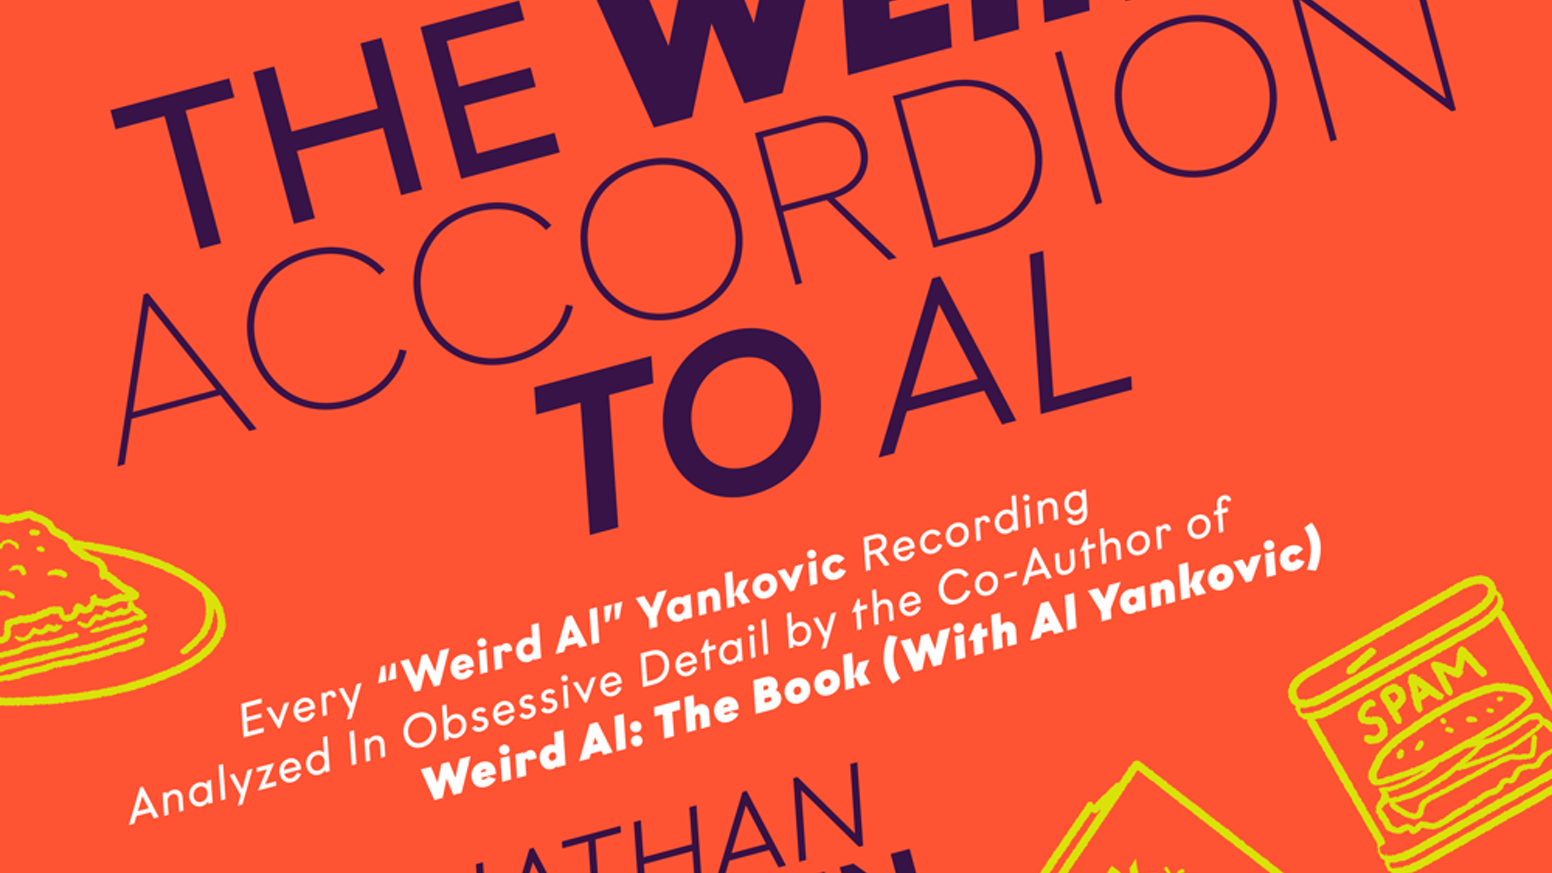 It's time for the Weird Accordion to Al column to become a real book you can hold in your hands and read on the toilet and everything!